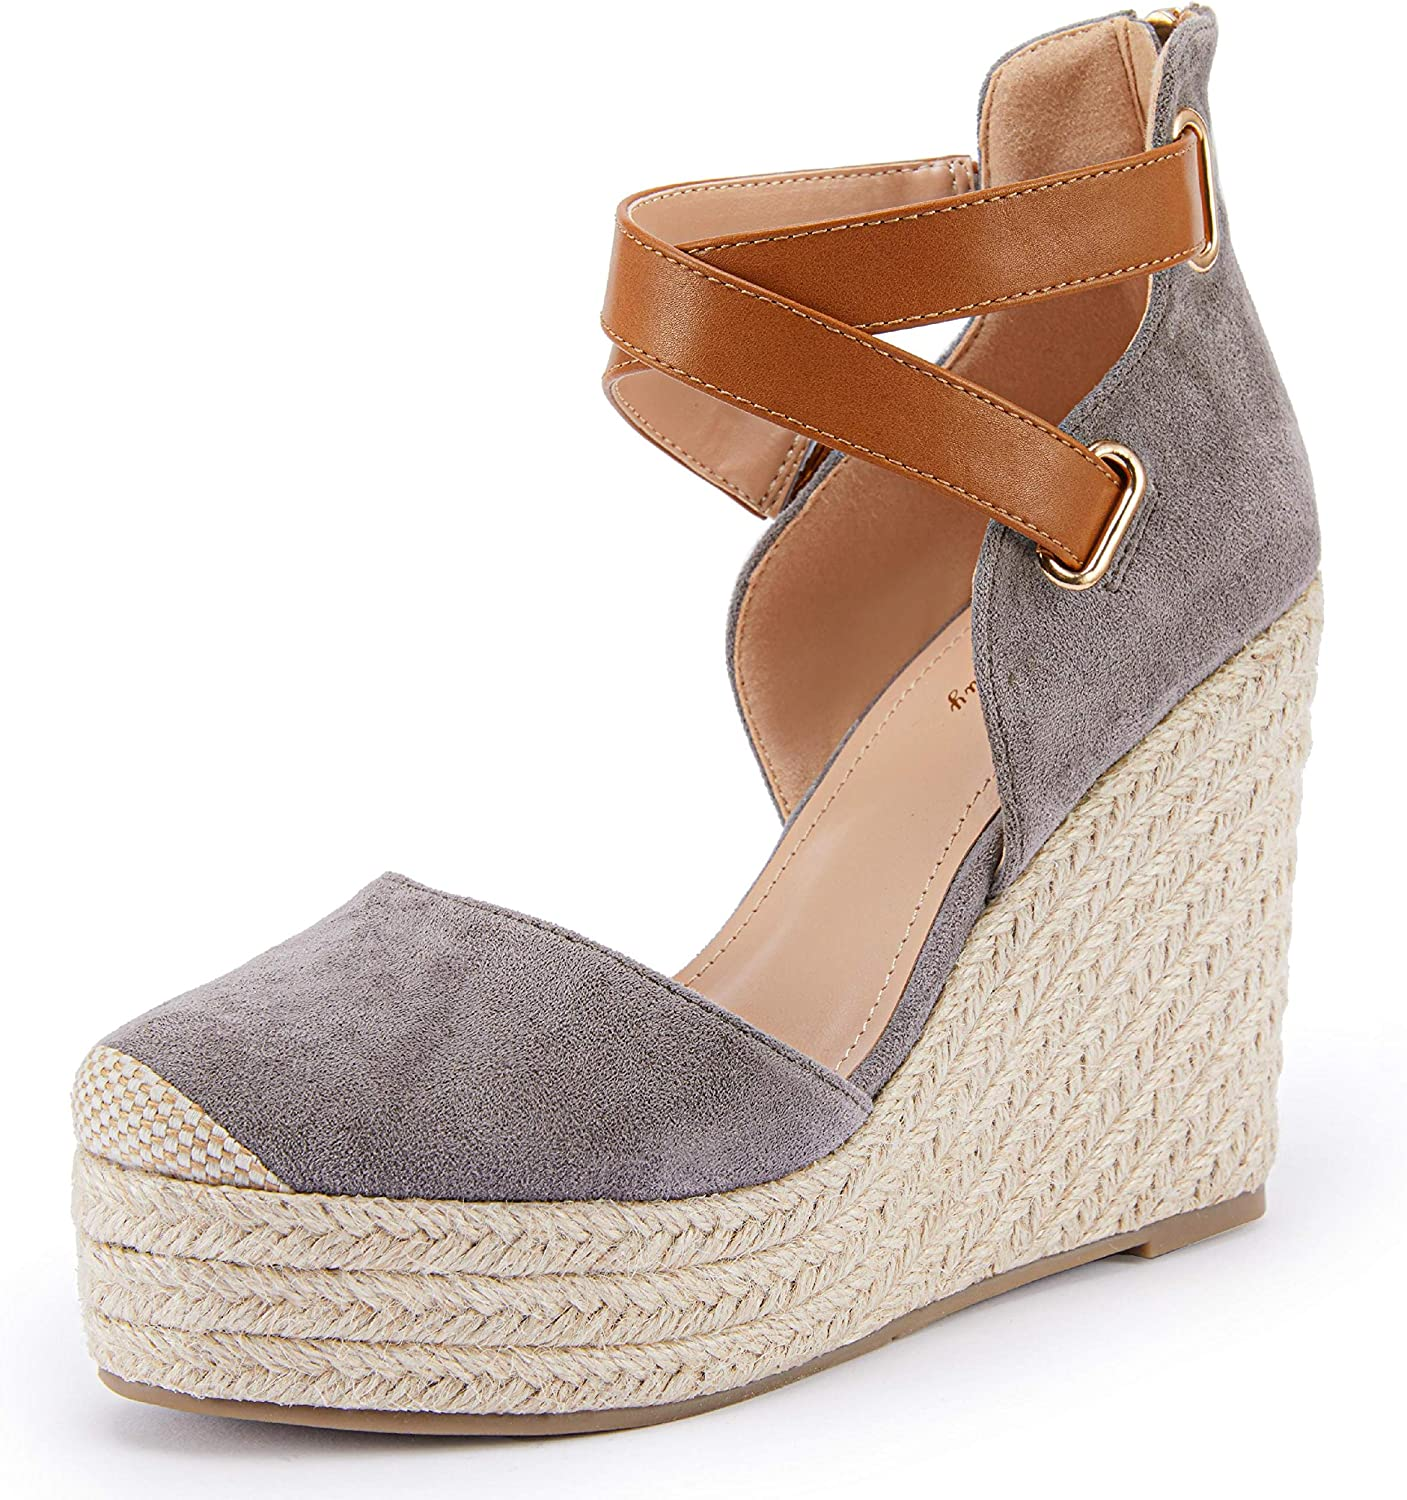 Store PiePieBuy Womens Wedge Espadrille Ankle Opening large release sale Pla Closed Toe Strap Cap